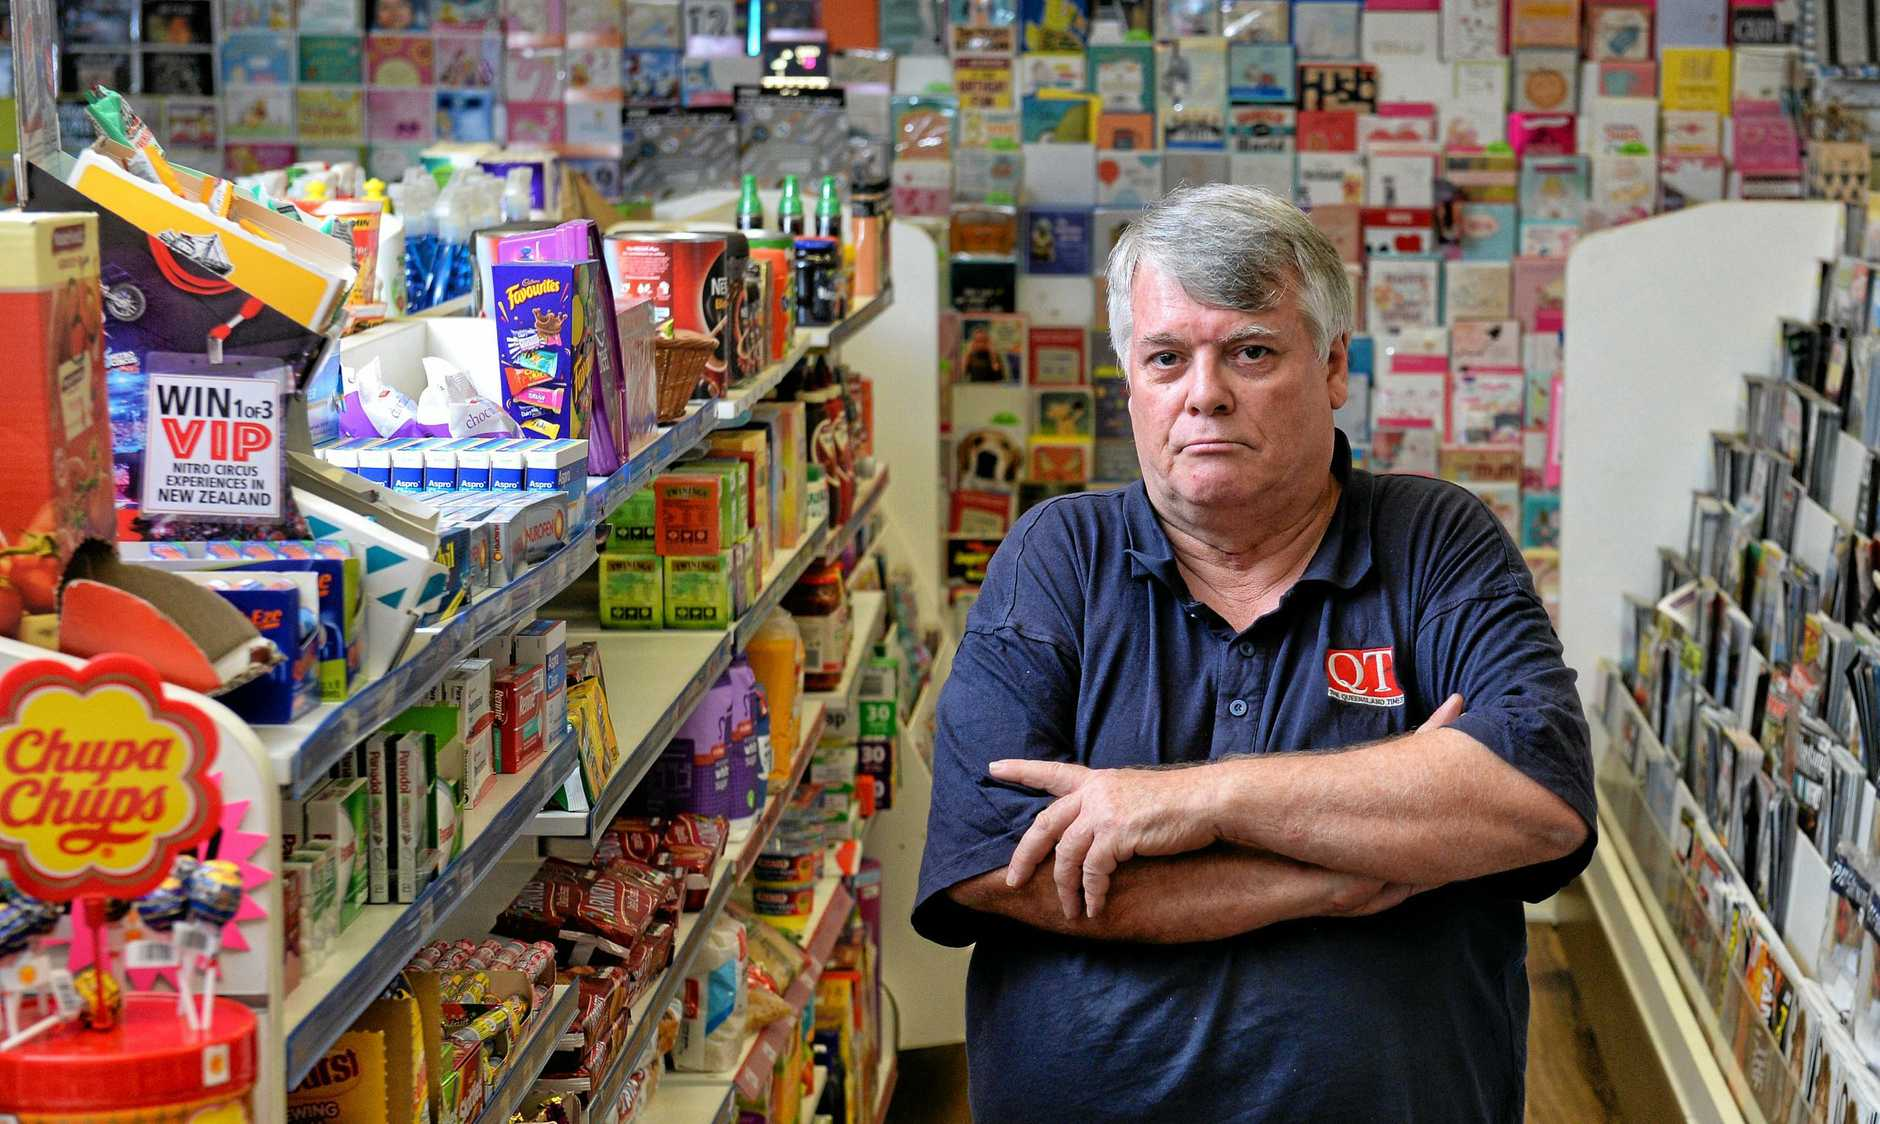 RIPPED OFF: Redbank News and Convenience owner Peter Clymo says thieves have taken him to the brink of bankruptcy.